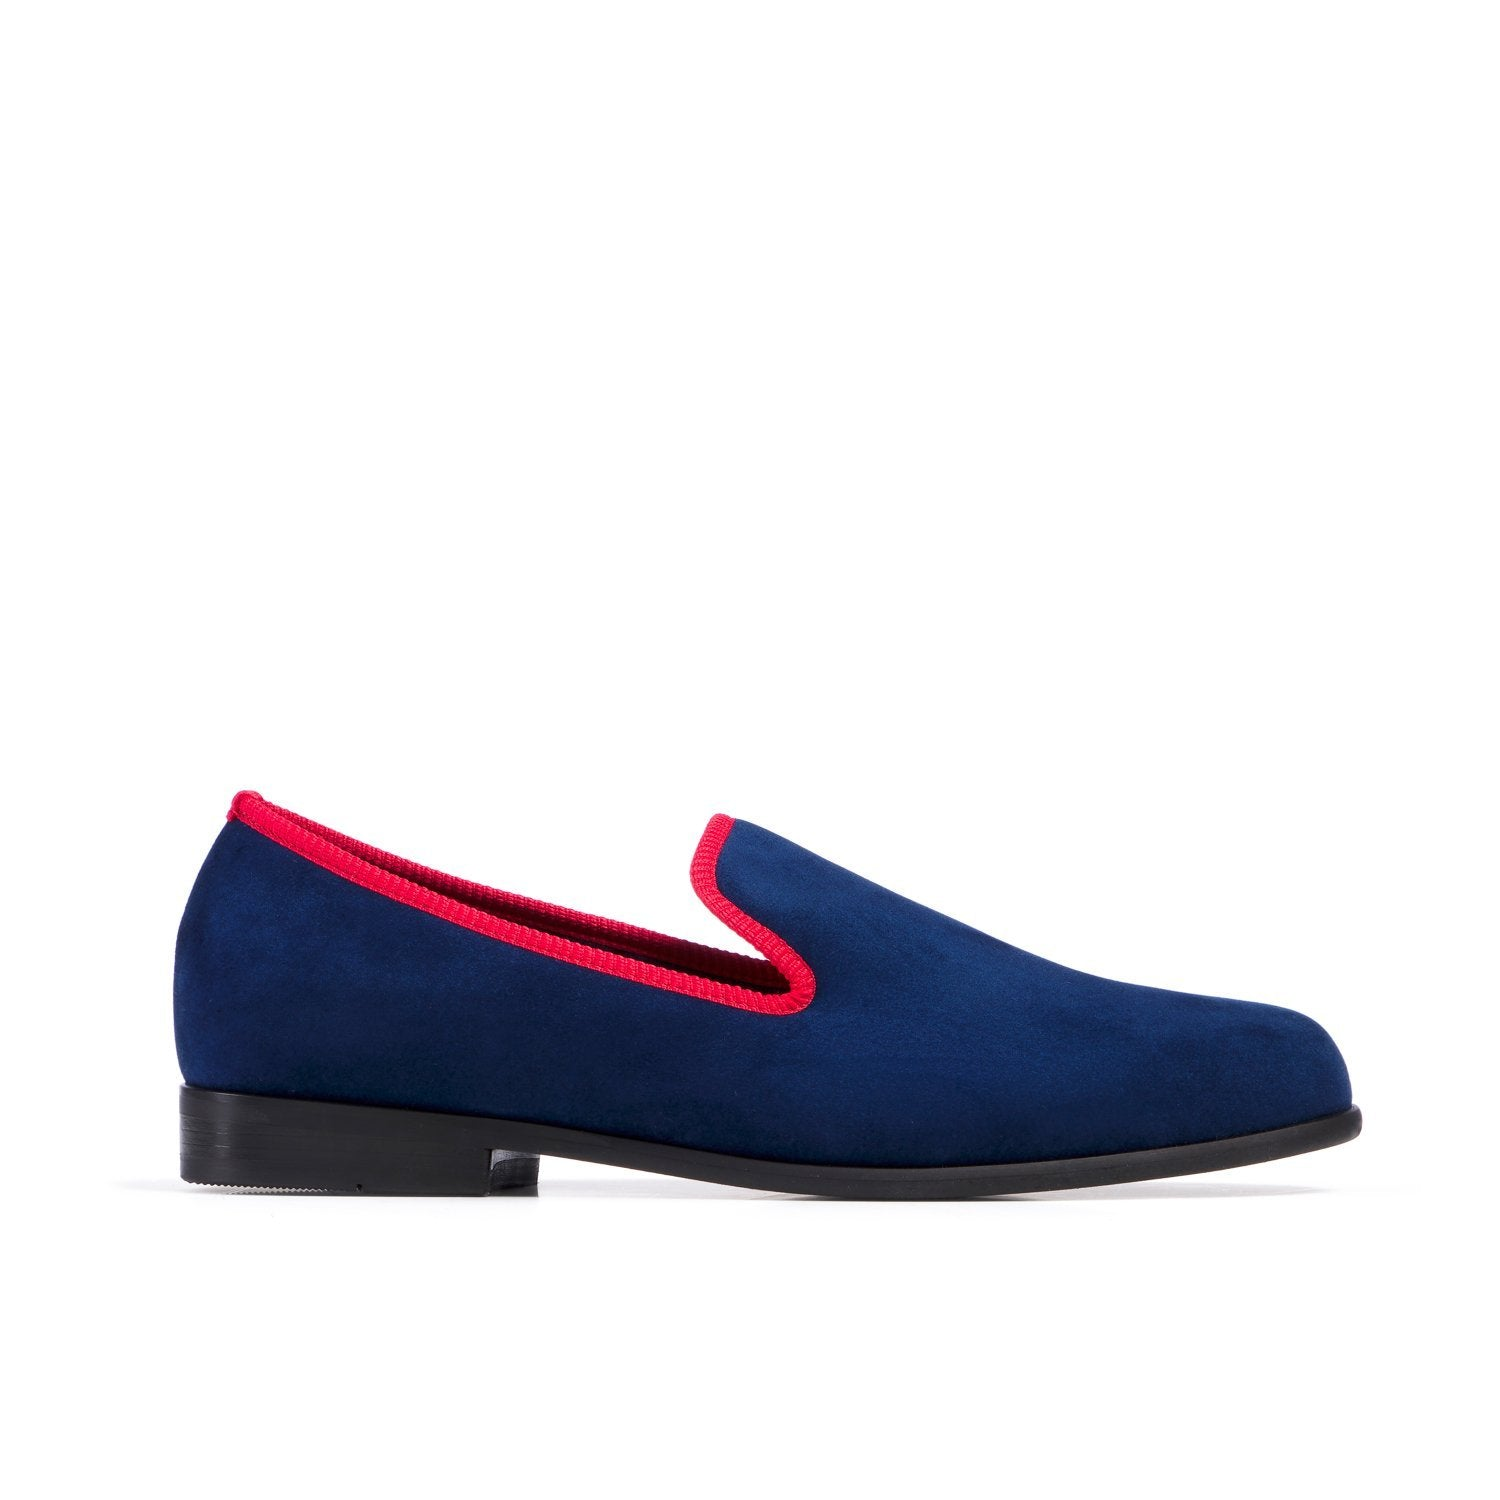 DUKE Bullish Blue Loafer Mens Loafers by Duke & Dexter, Size UK 12 / US 12-12.5 / EU 46